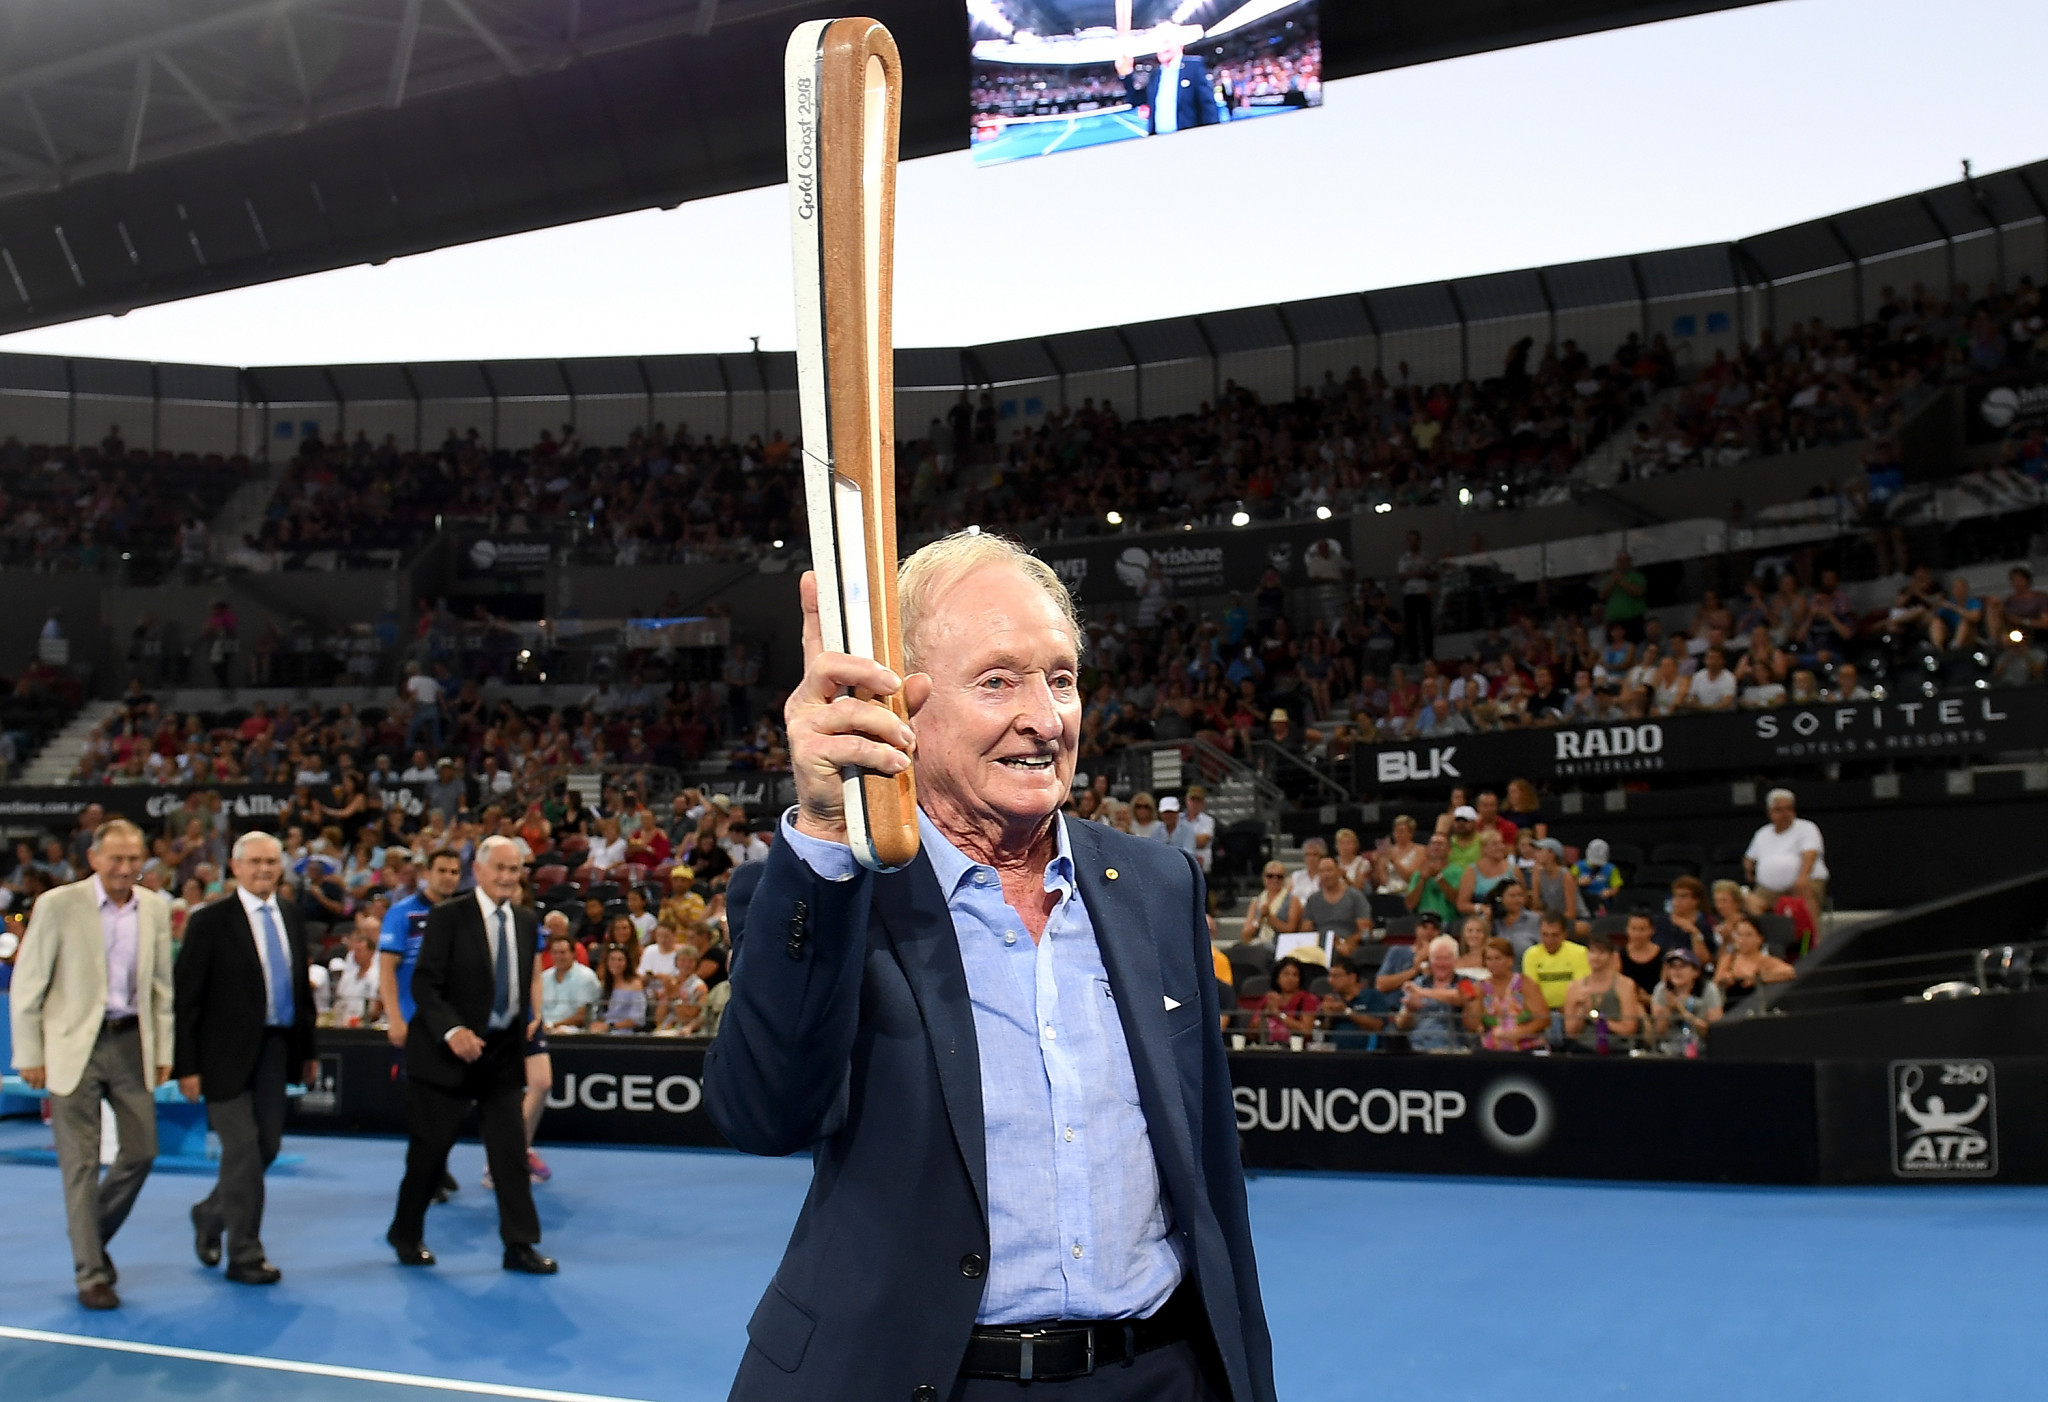 Laver among Australian tennis legends to hold Gold Coast 2018 Queen's Baton at Brisbane International